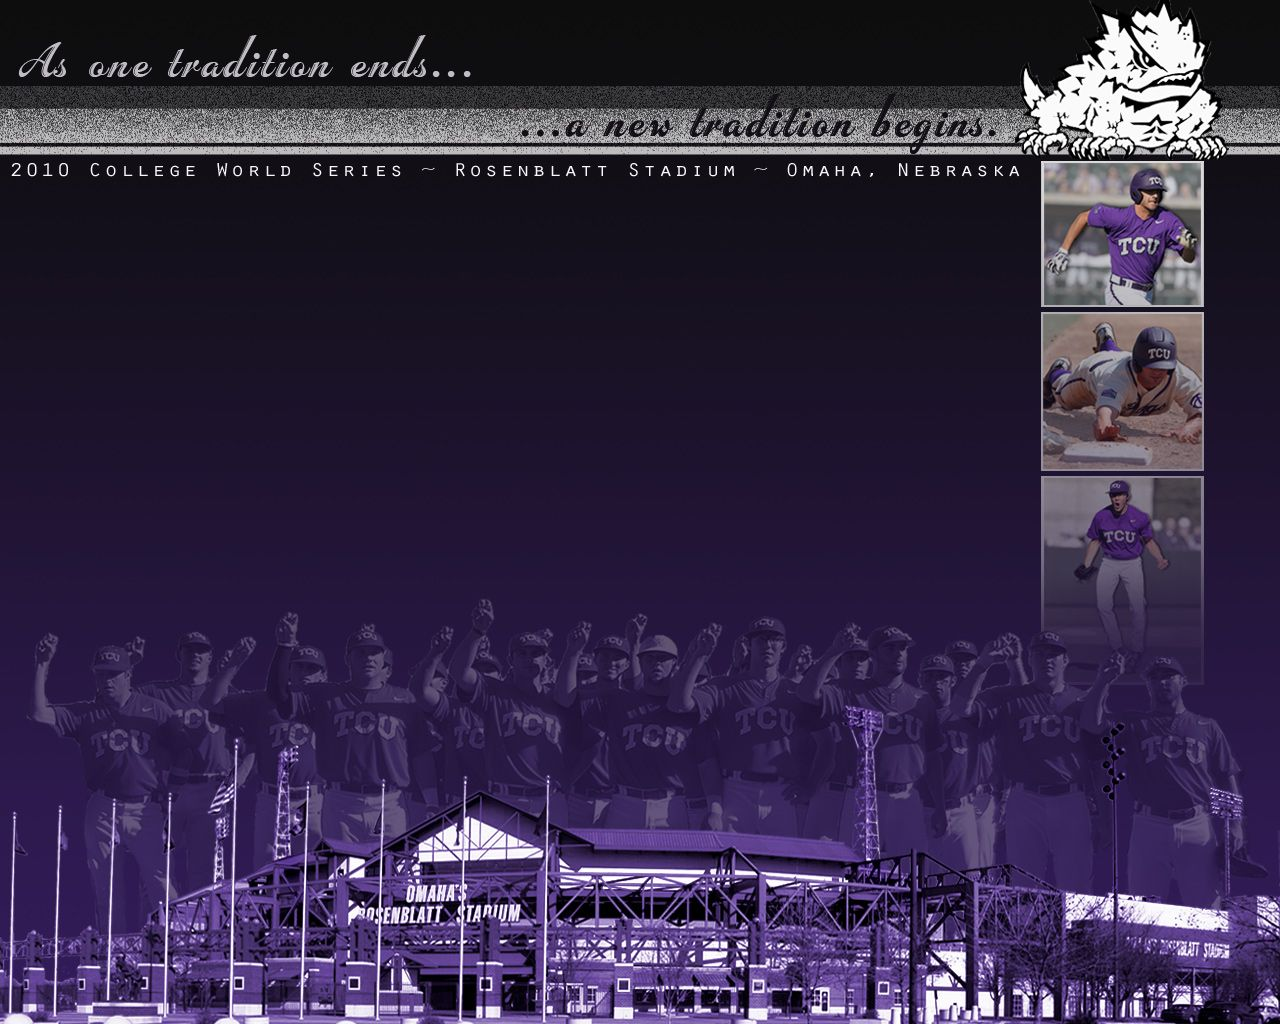 New TCU CWS Desktop Wallpaper 1280x1024